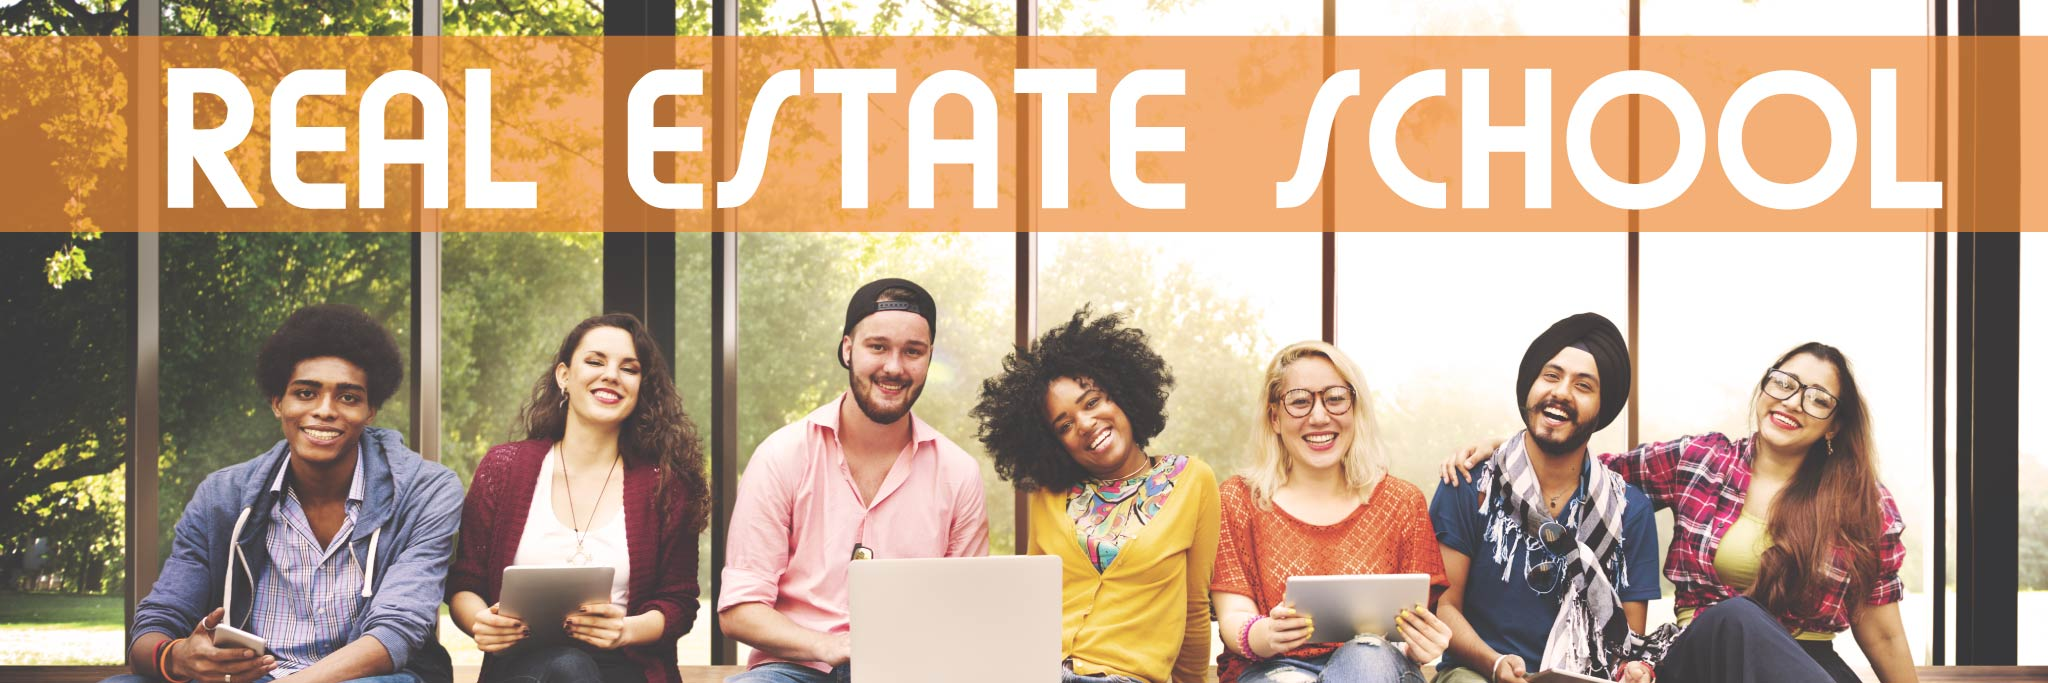 Get-Your-Real-Estate-License-Real-Estate-School-Real-Estate-Classes-Become-a-Real-Estate-Agent